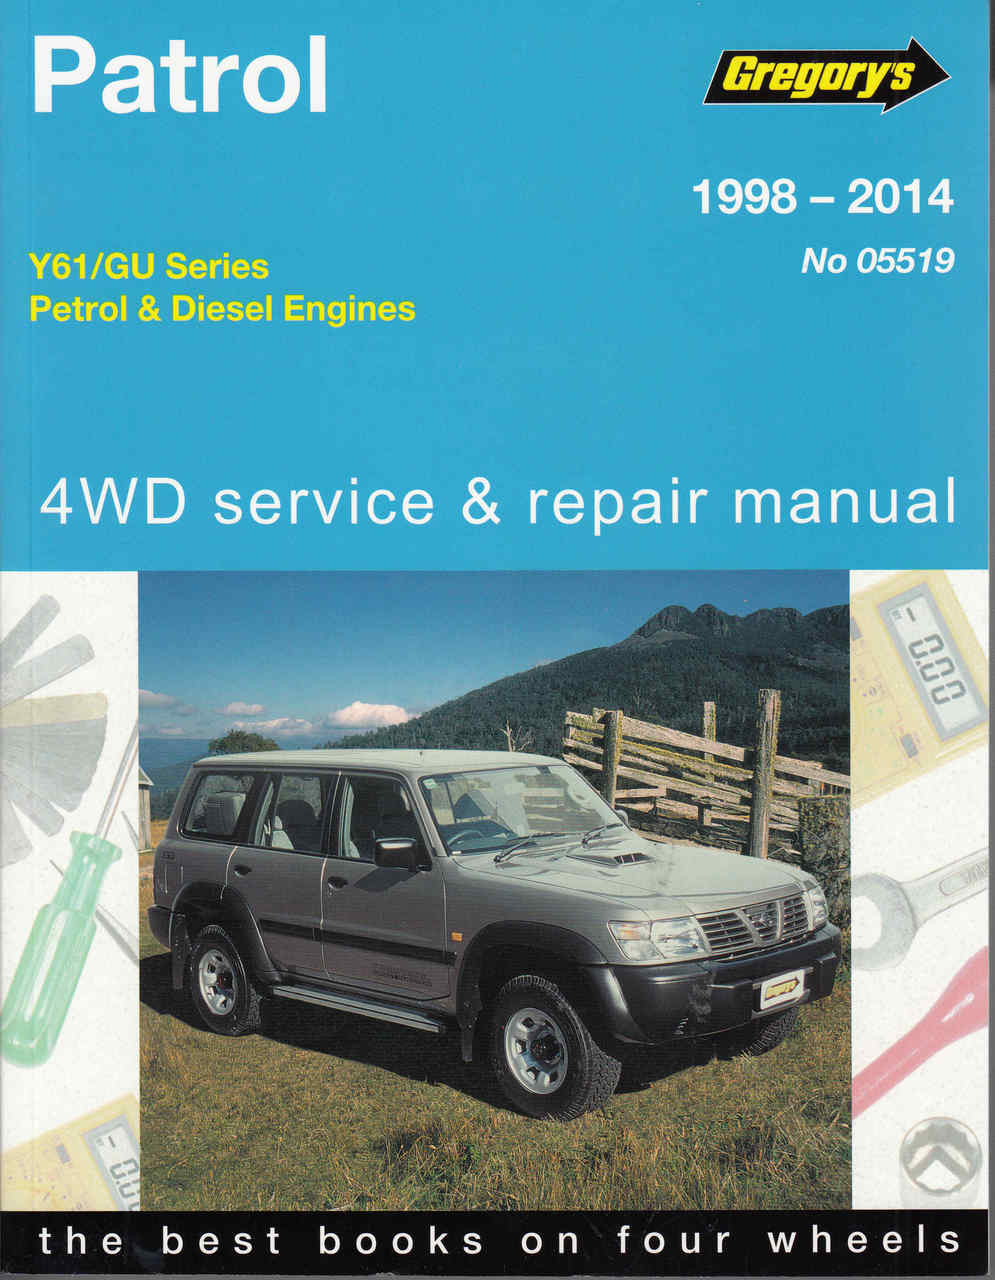 nissan patrol y61 guseries petrol diesel 1998 2014 workshop manua rh automotobookshop com au nissan patrol td42 workshop manual pdf Nissan 3.5 Engine Diagram